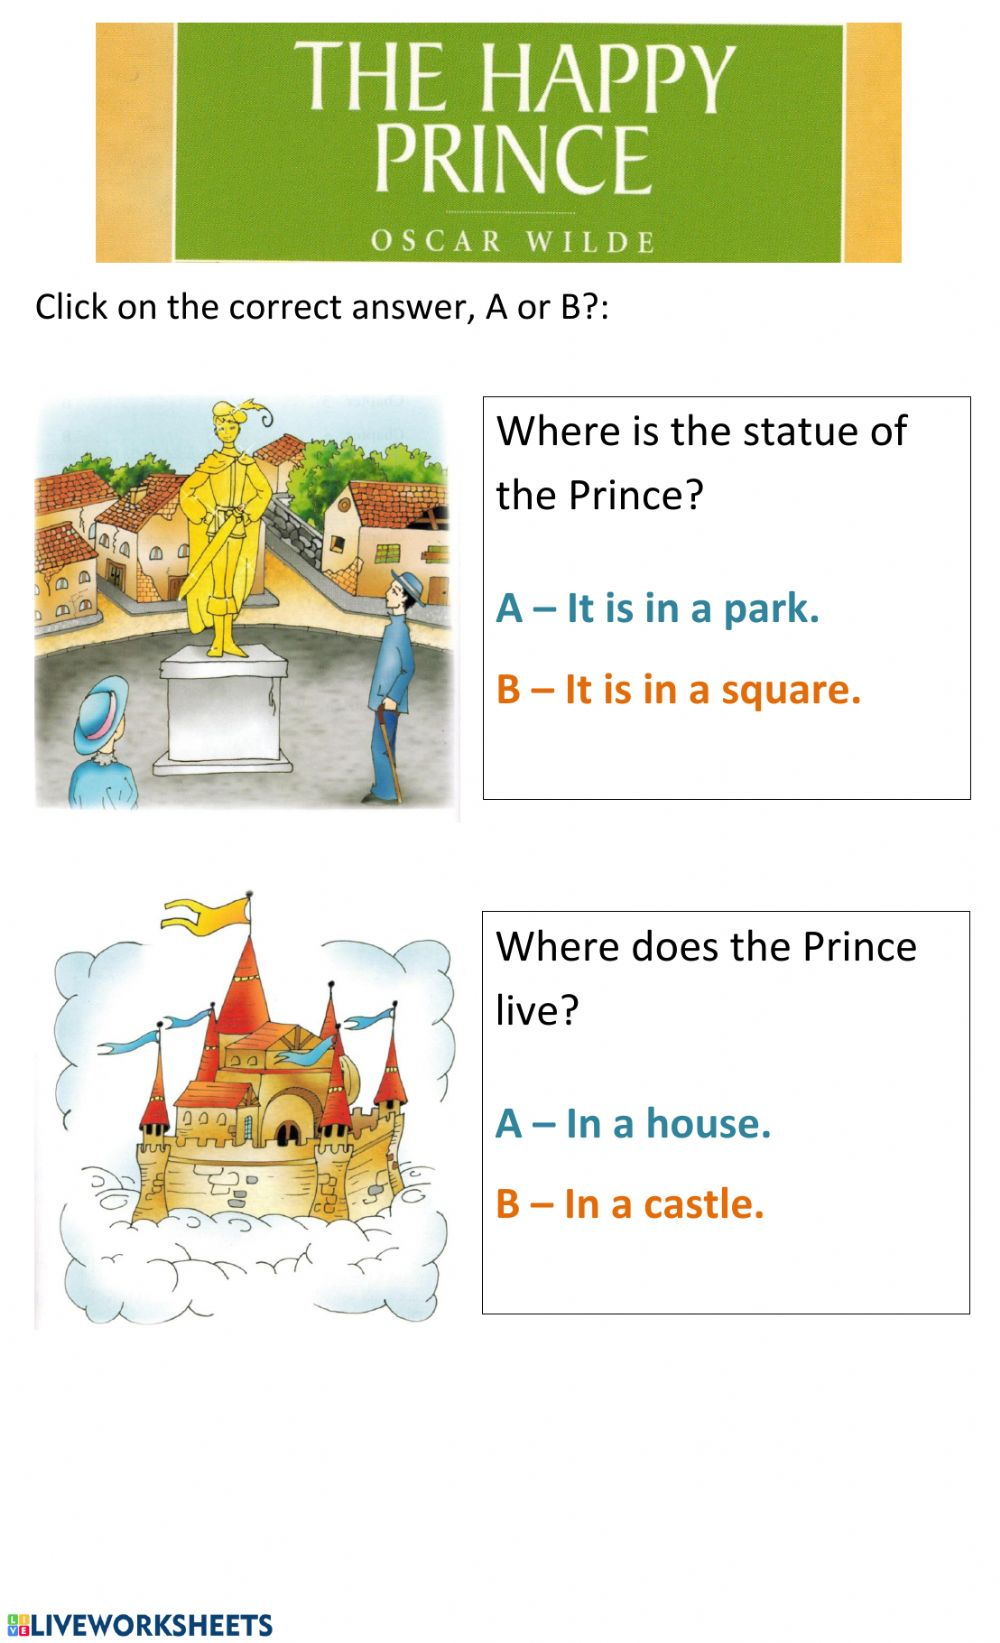 The Happy Prince 2 - Interactive worksheet